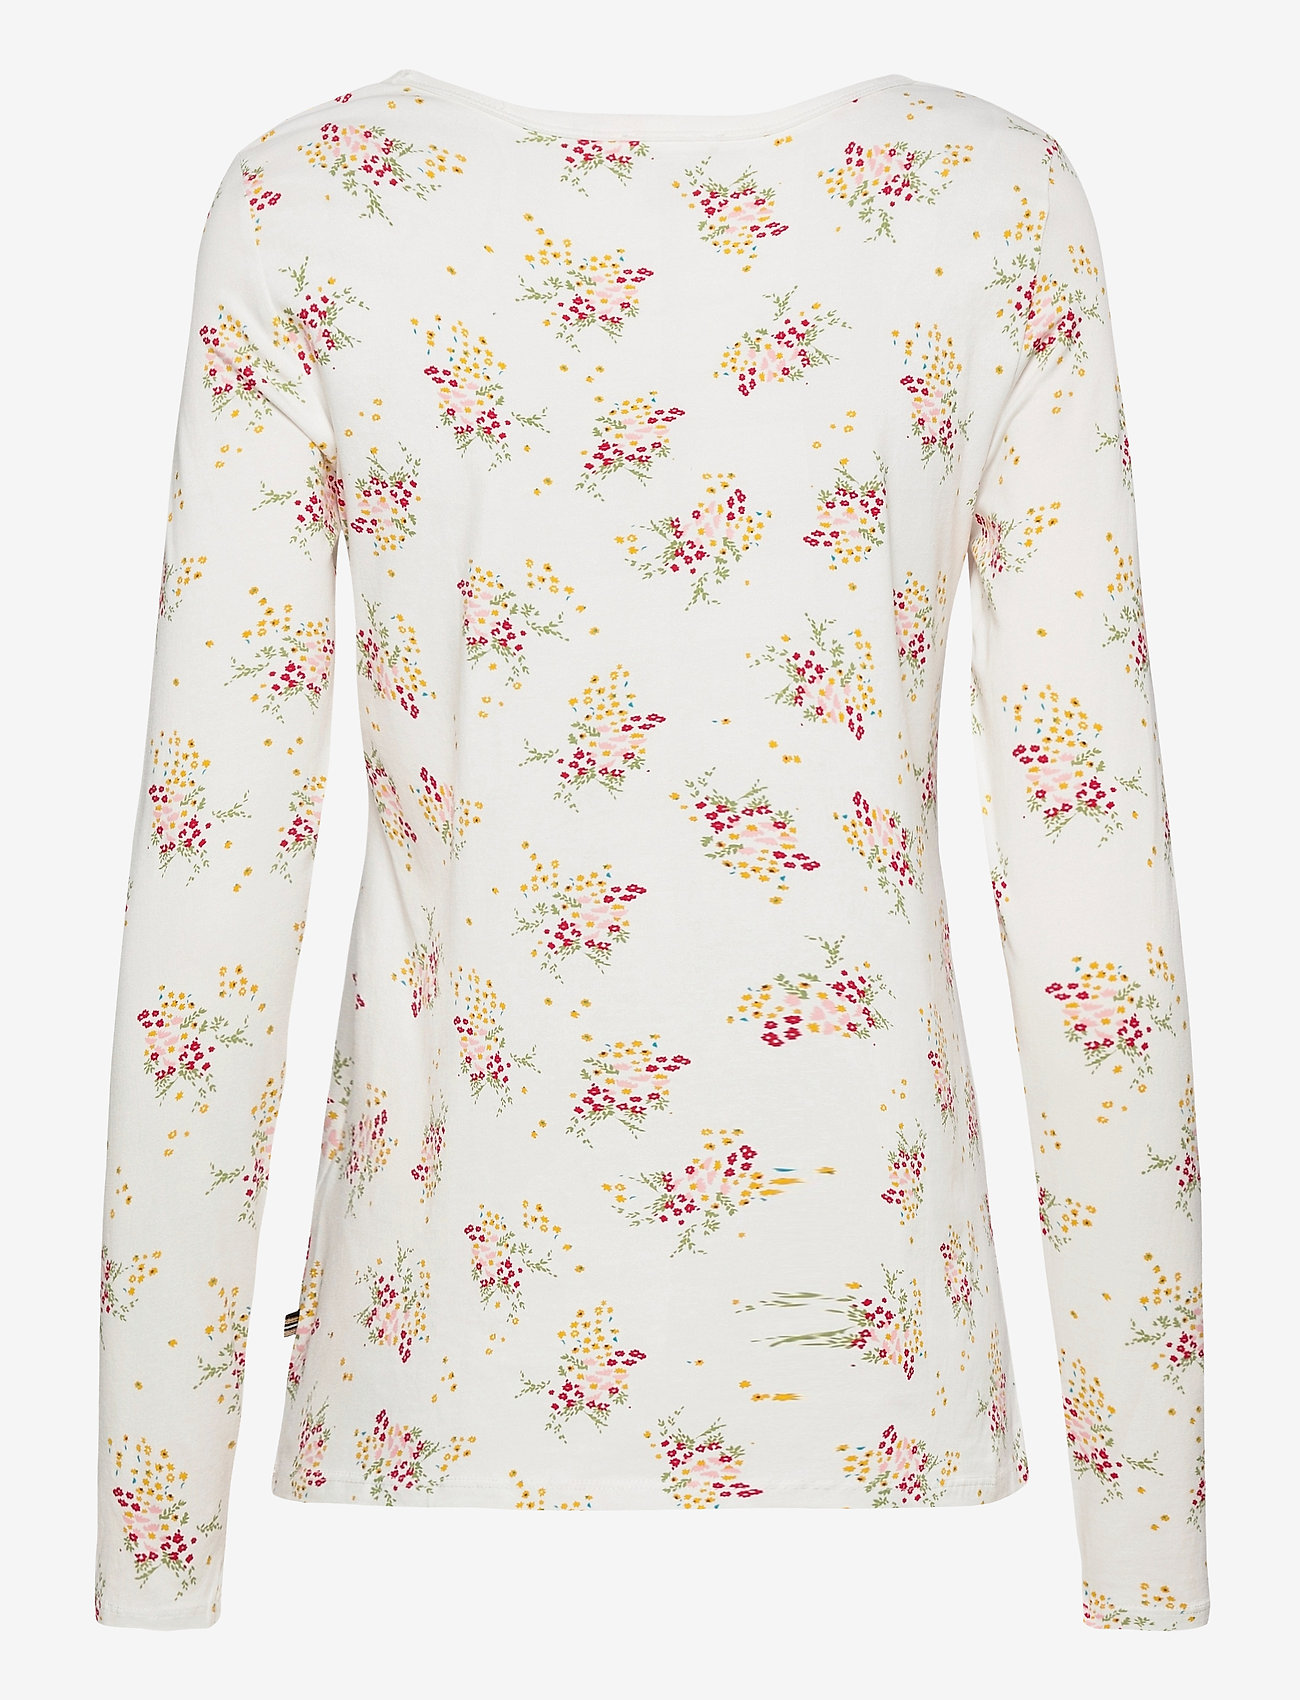 Esprit Casual - T-Shirts - long-sleeved tops - off white - 1